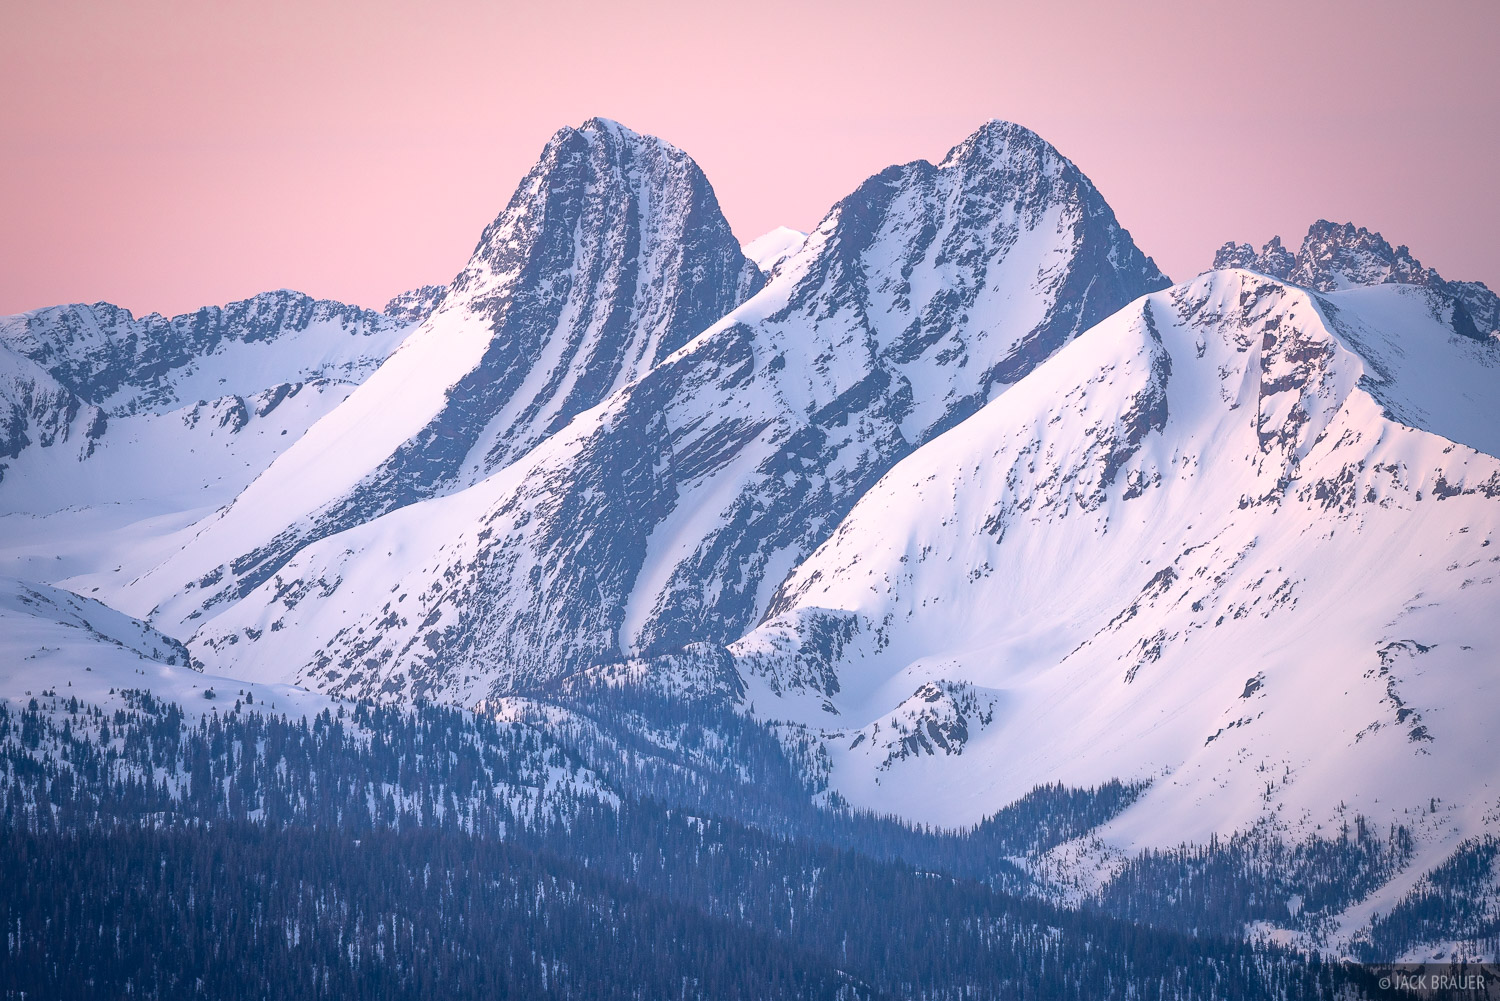 Arrow Peak, Colorado, Grenadier Range, San Juan Mountains, Vestal Peak, Weminuche Wilderness, sunrise, photo